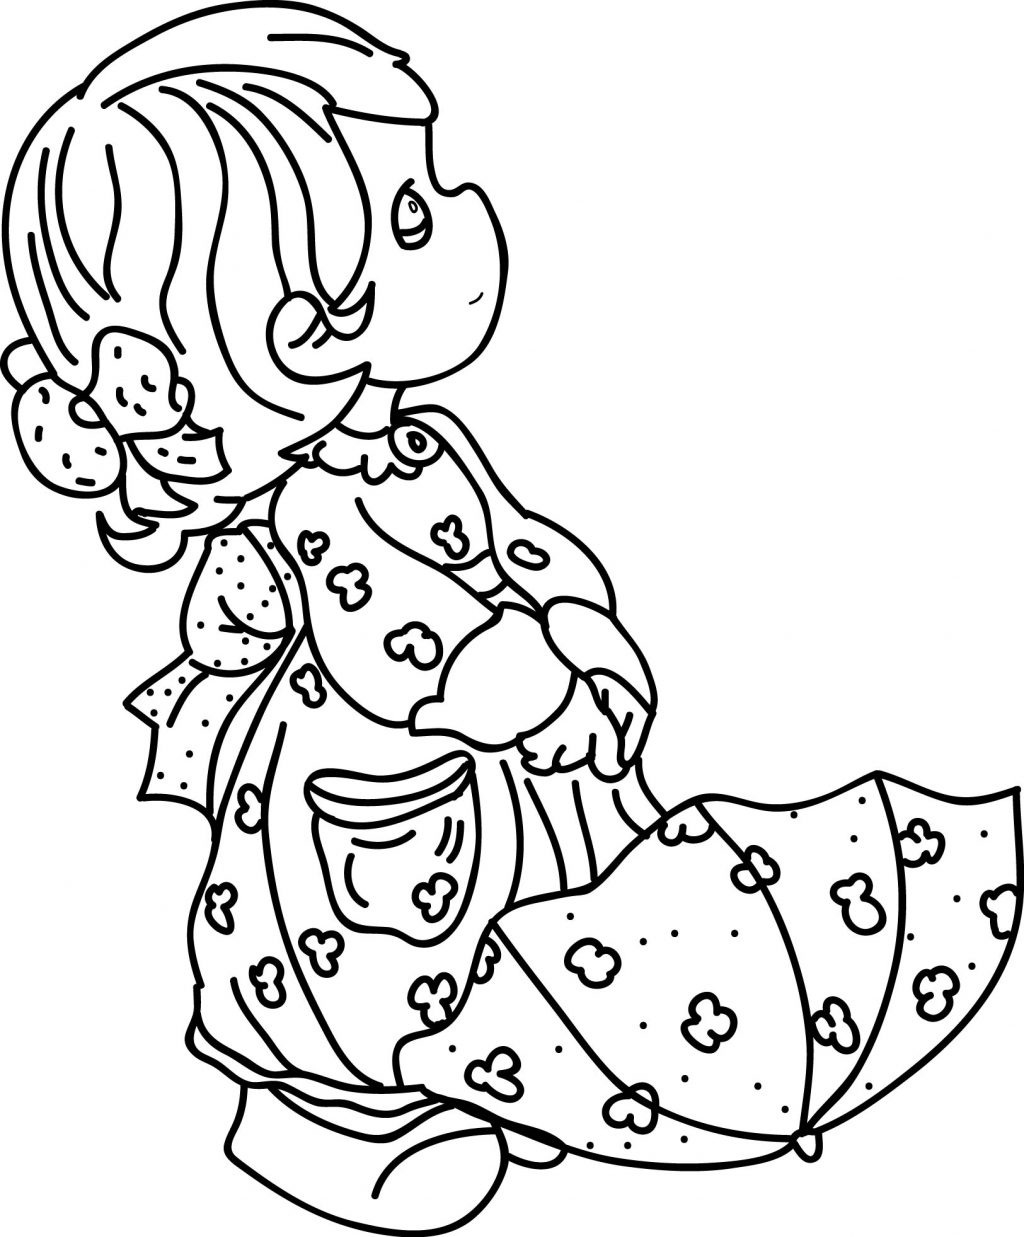 coloring pages of little girls cute girl coloring pages to download and print for free of little pages coloring girls